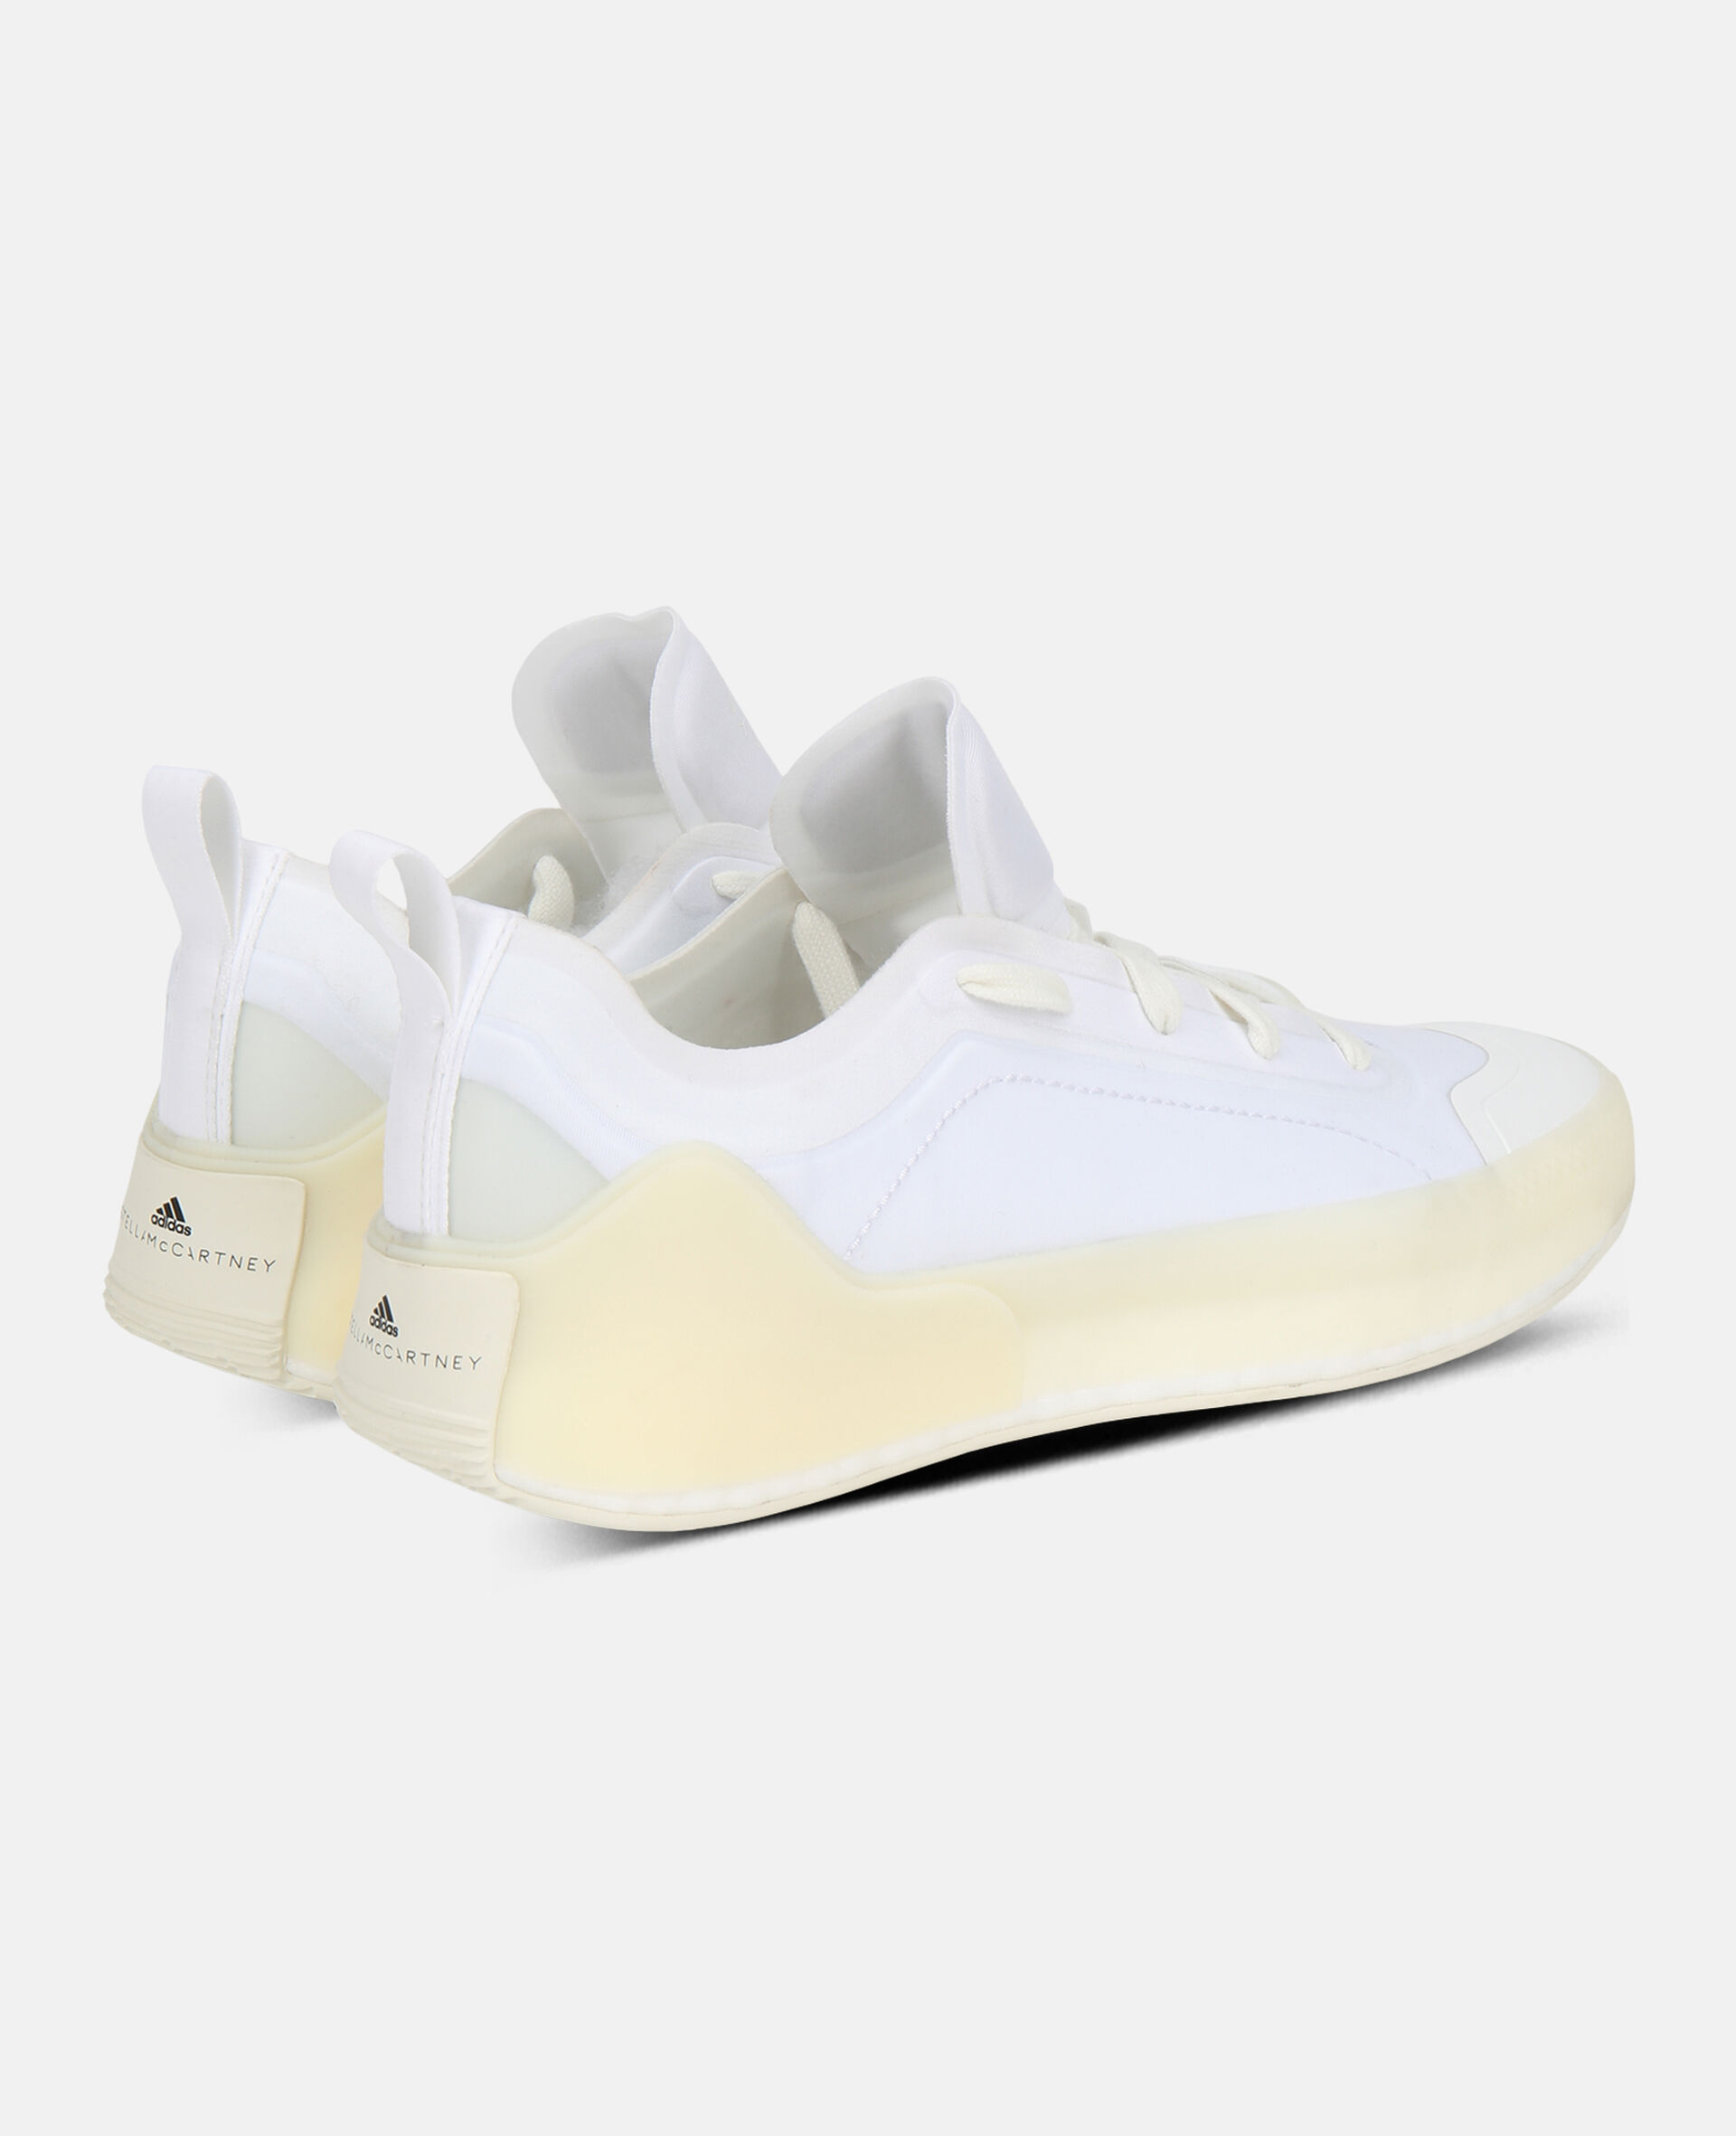 White Boost Treino Sneakers-White-large image number 6